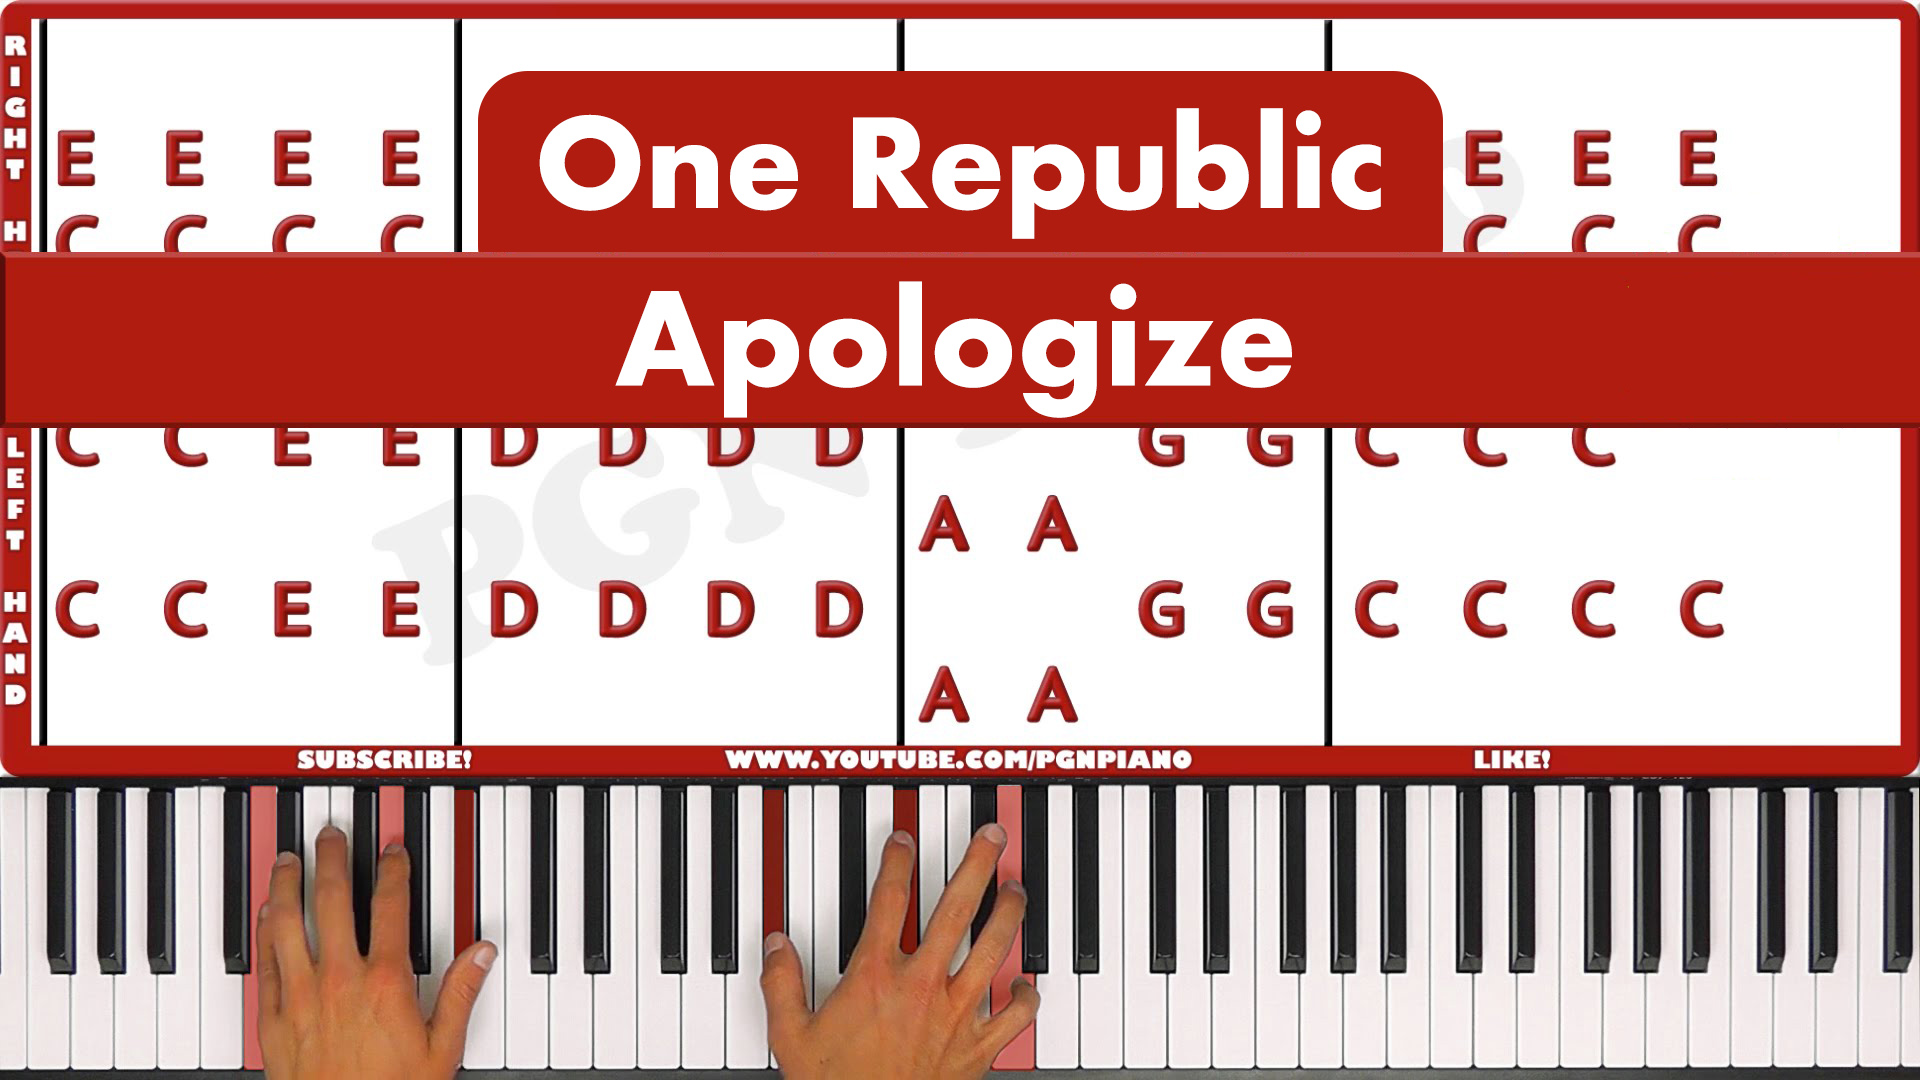 One Republic – Apologize – Original